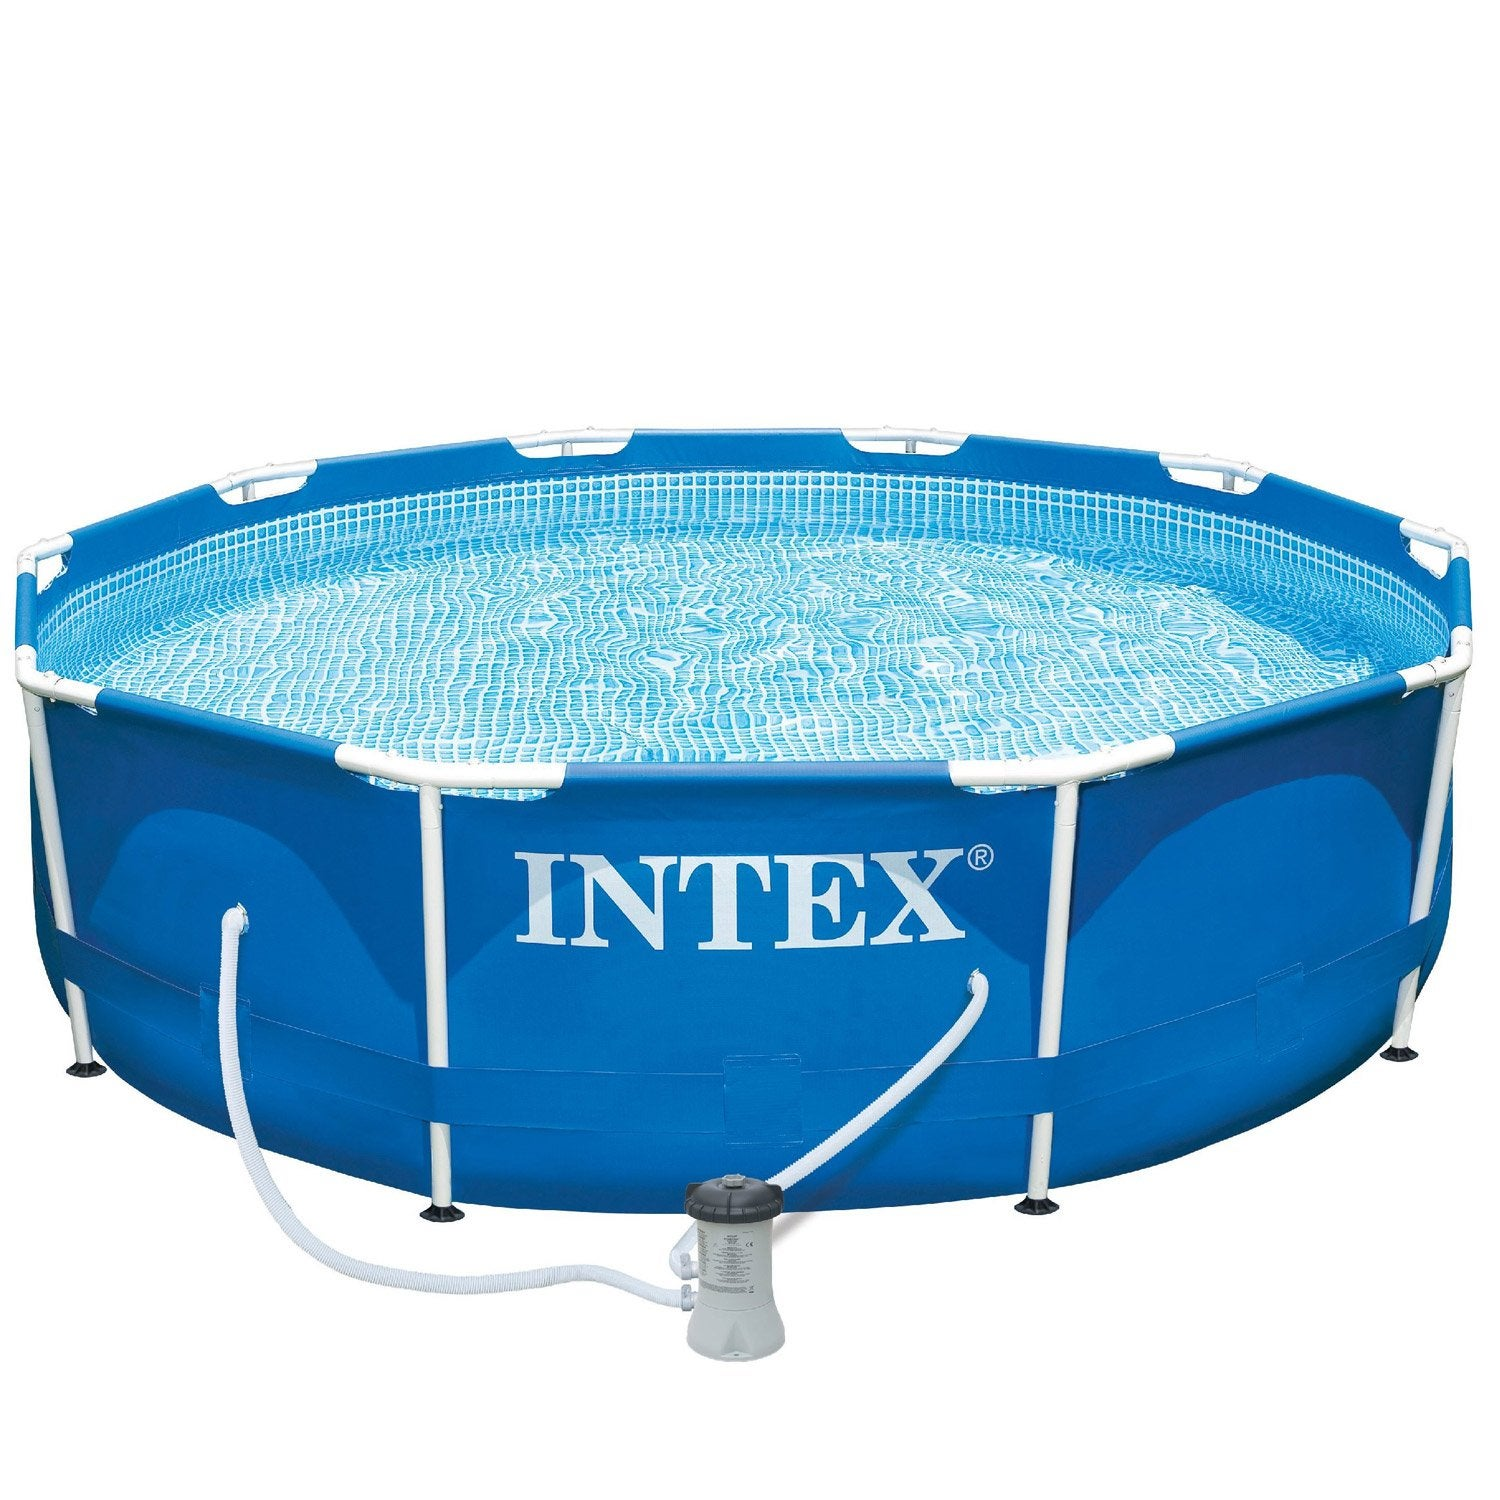 Piscine hors sol autoportante tubulaire metal frame intex for Piscine hors sol 5x4